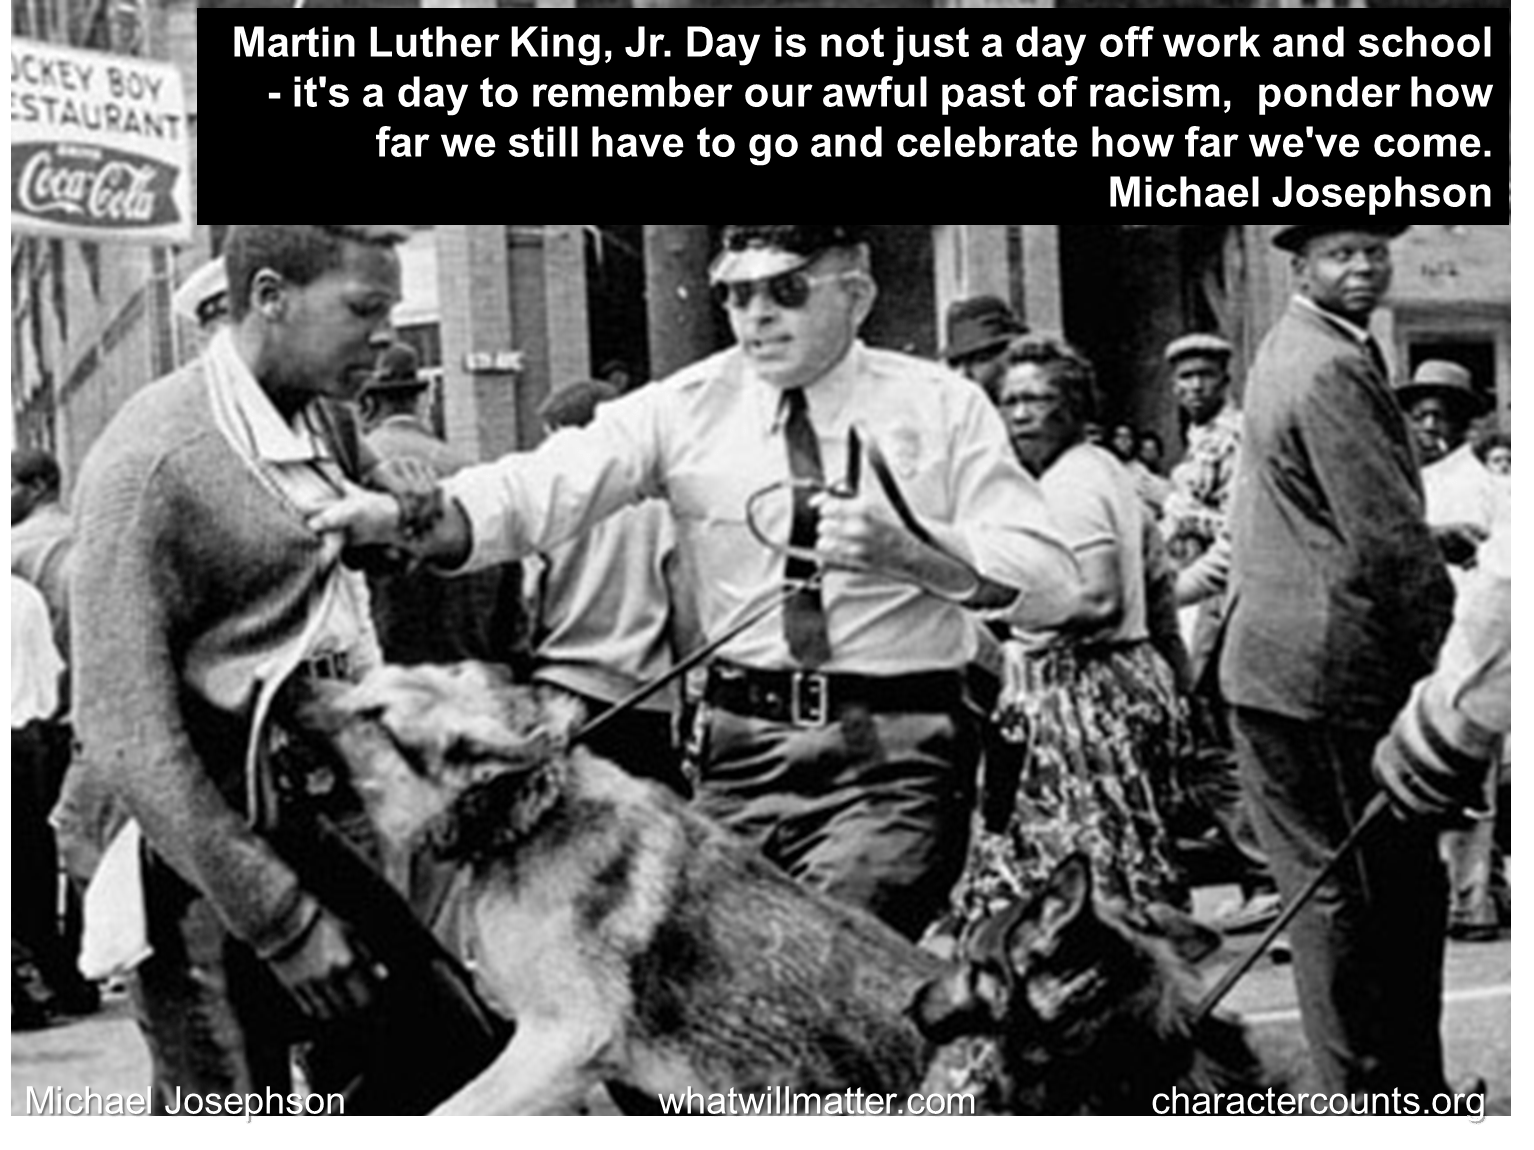 MLK Day to remember